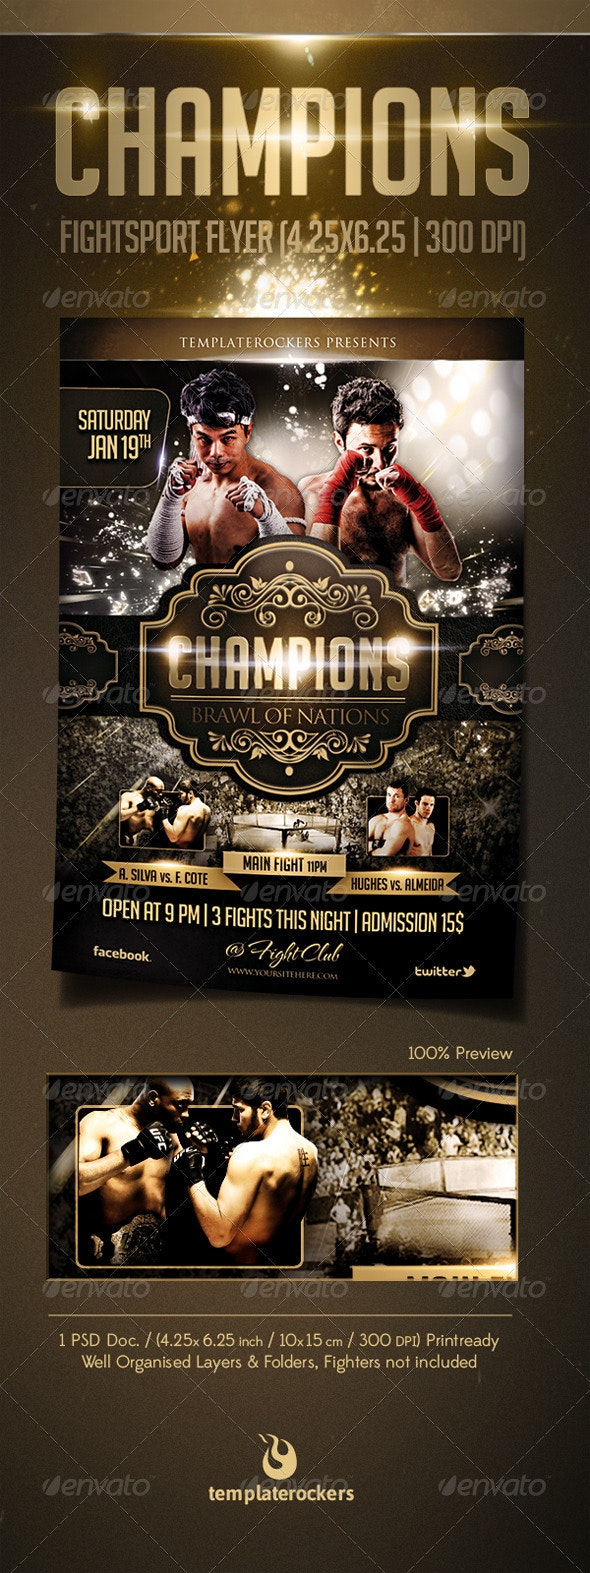 Champions Fightsport Flyer - Sports Events